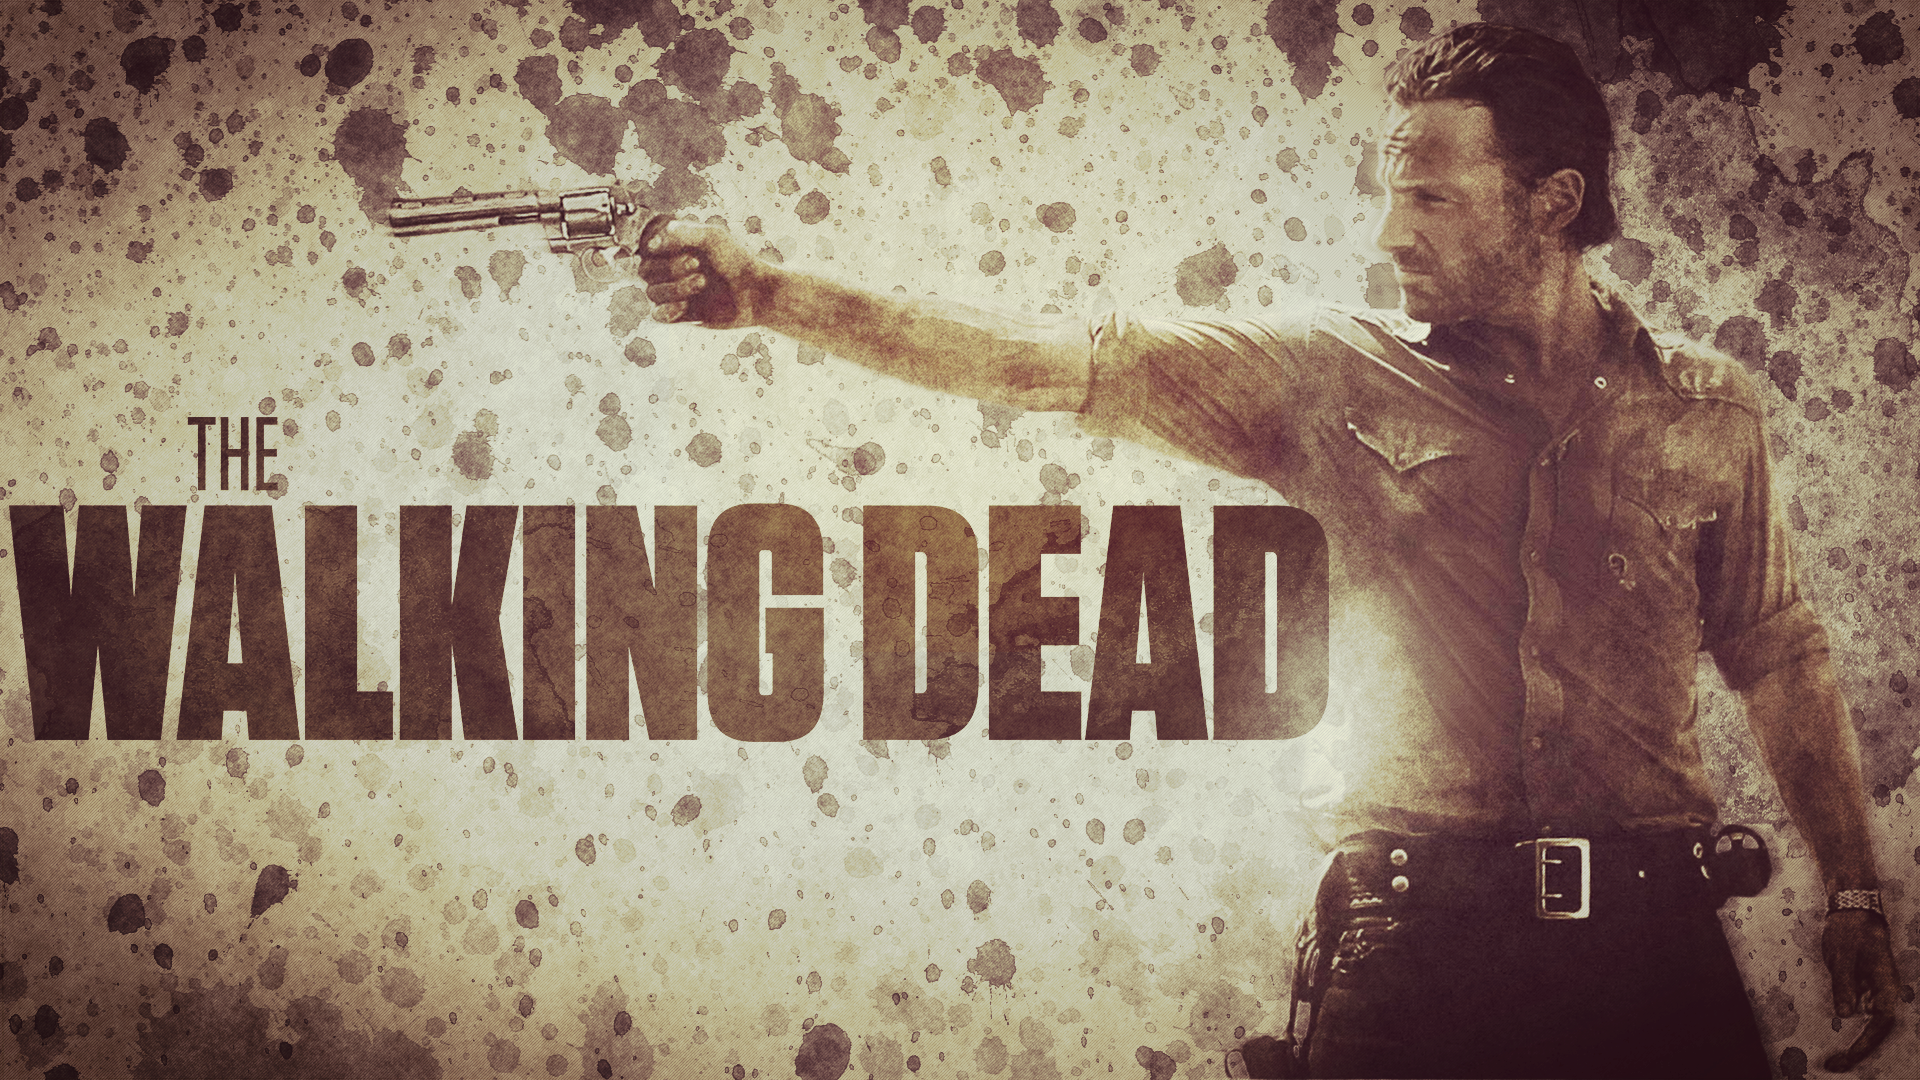 <b>The</b> Walking Dead - <b>Rick Grimes</b> by Mennisian on DeviantArt